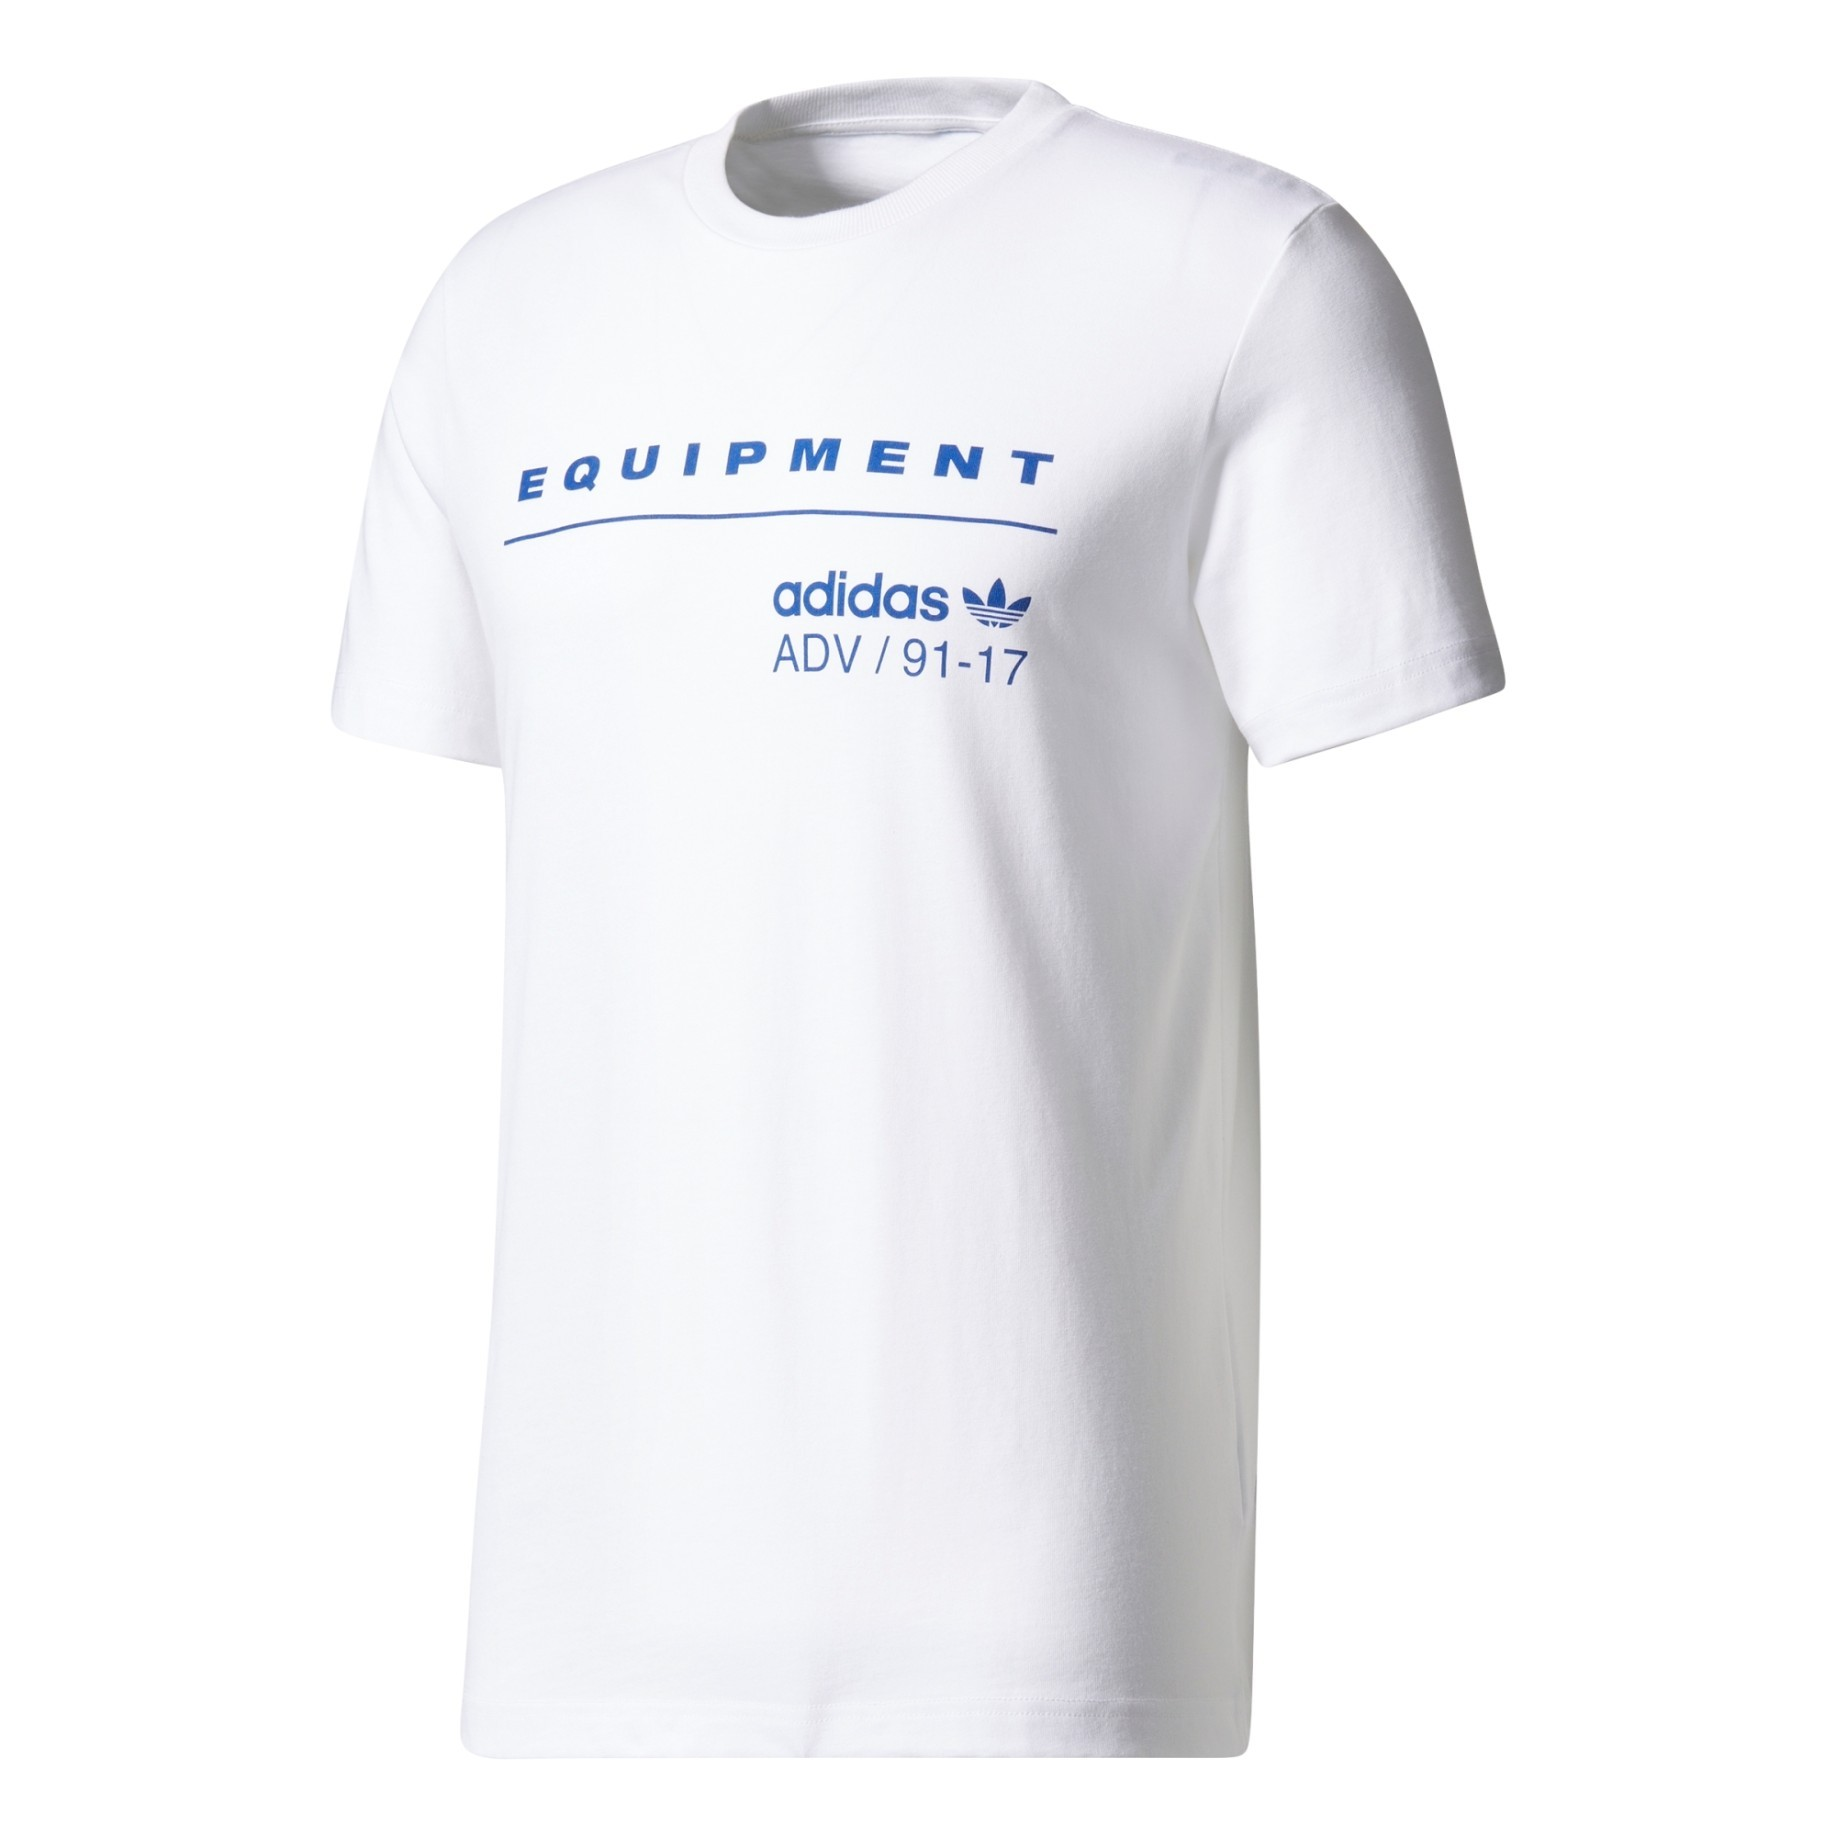 Shirt Tee Classic Pdx White Colore T Adidas TqvAz6vW